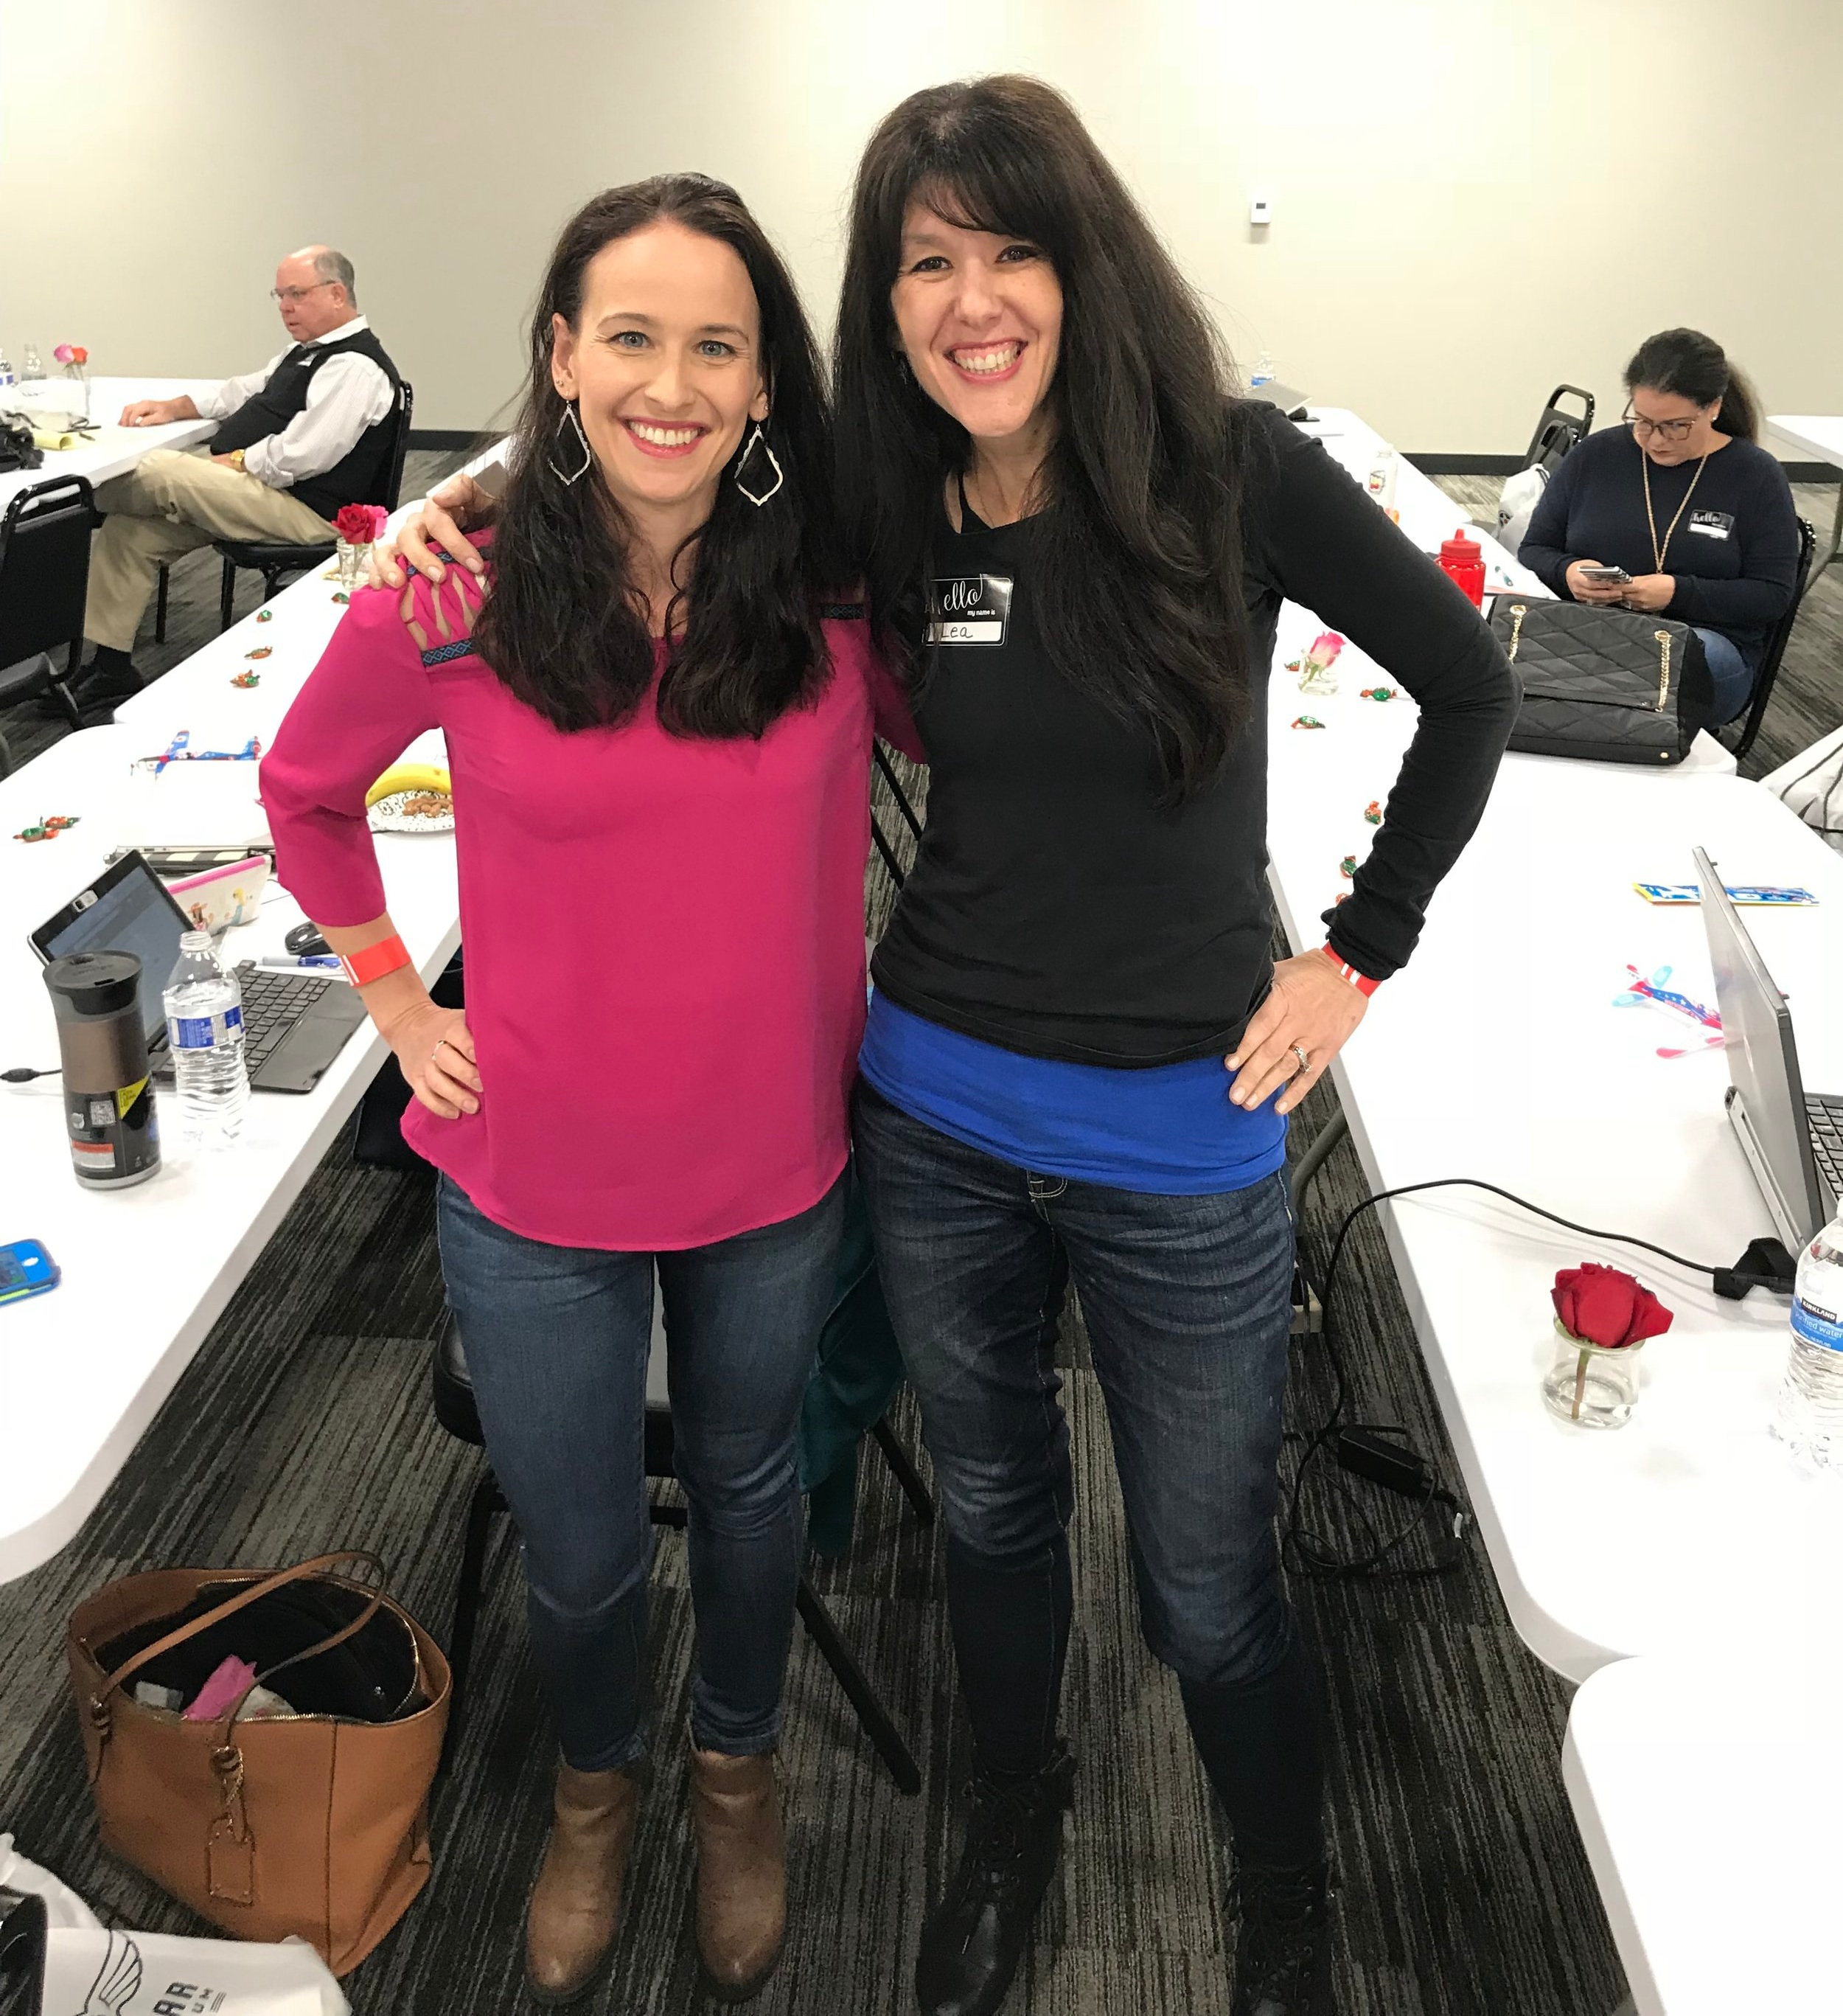 Two fitness bloggers in jeans? A rare occasion!